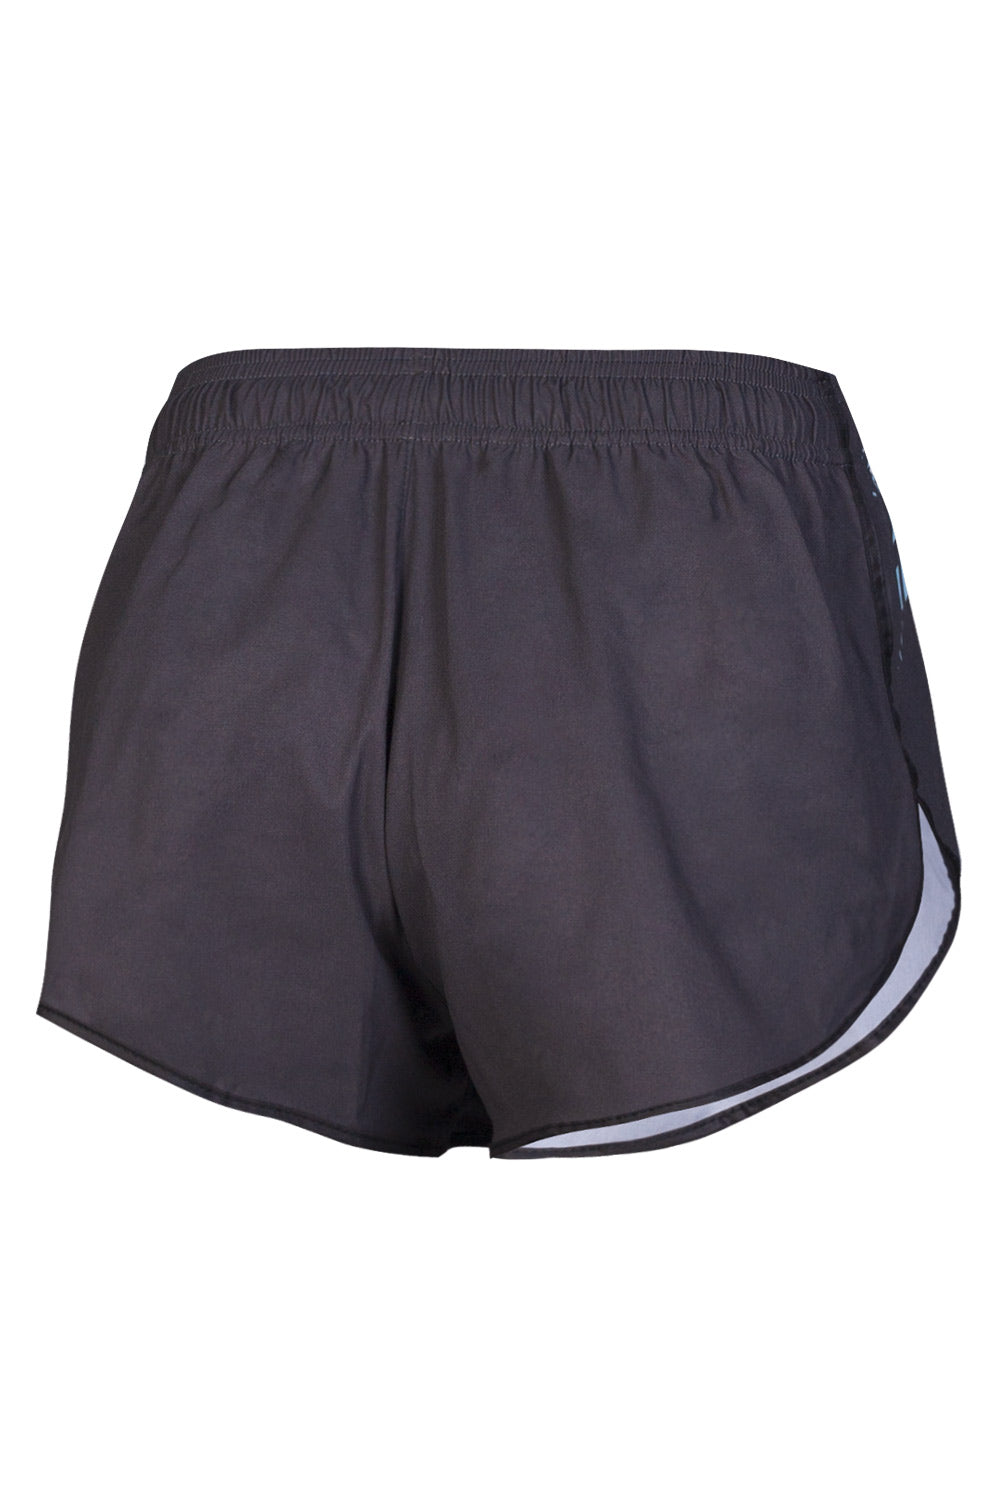 R50 Shorts Cortos Running (MISS) - Taymory 2018 - REJOVI